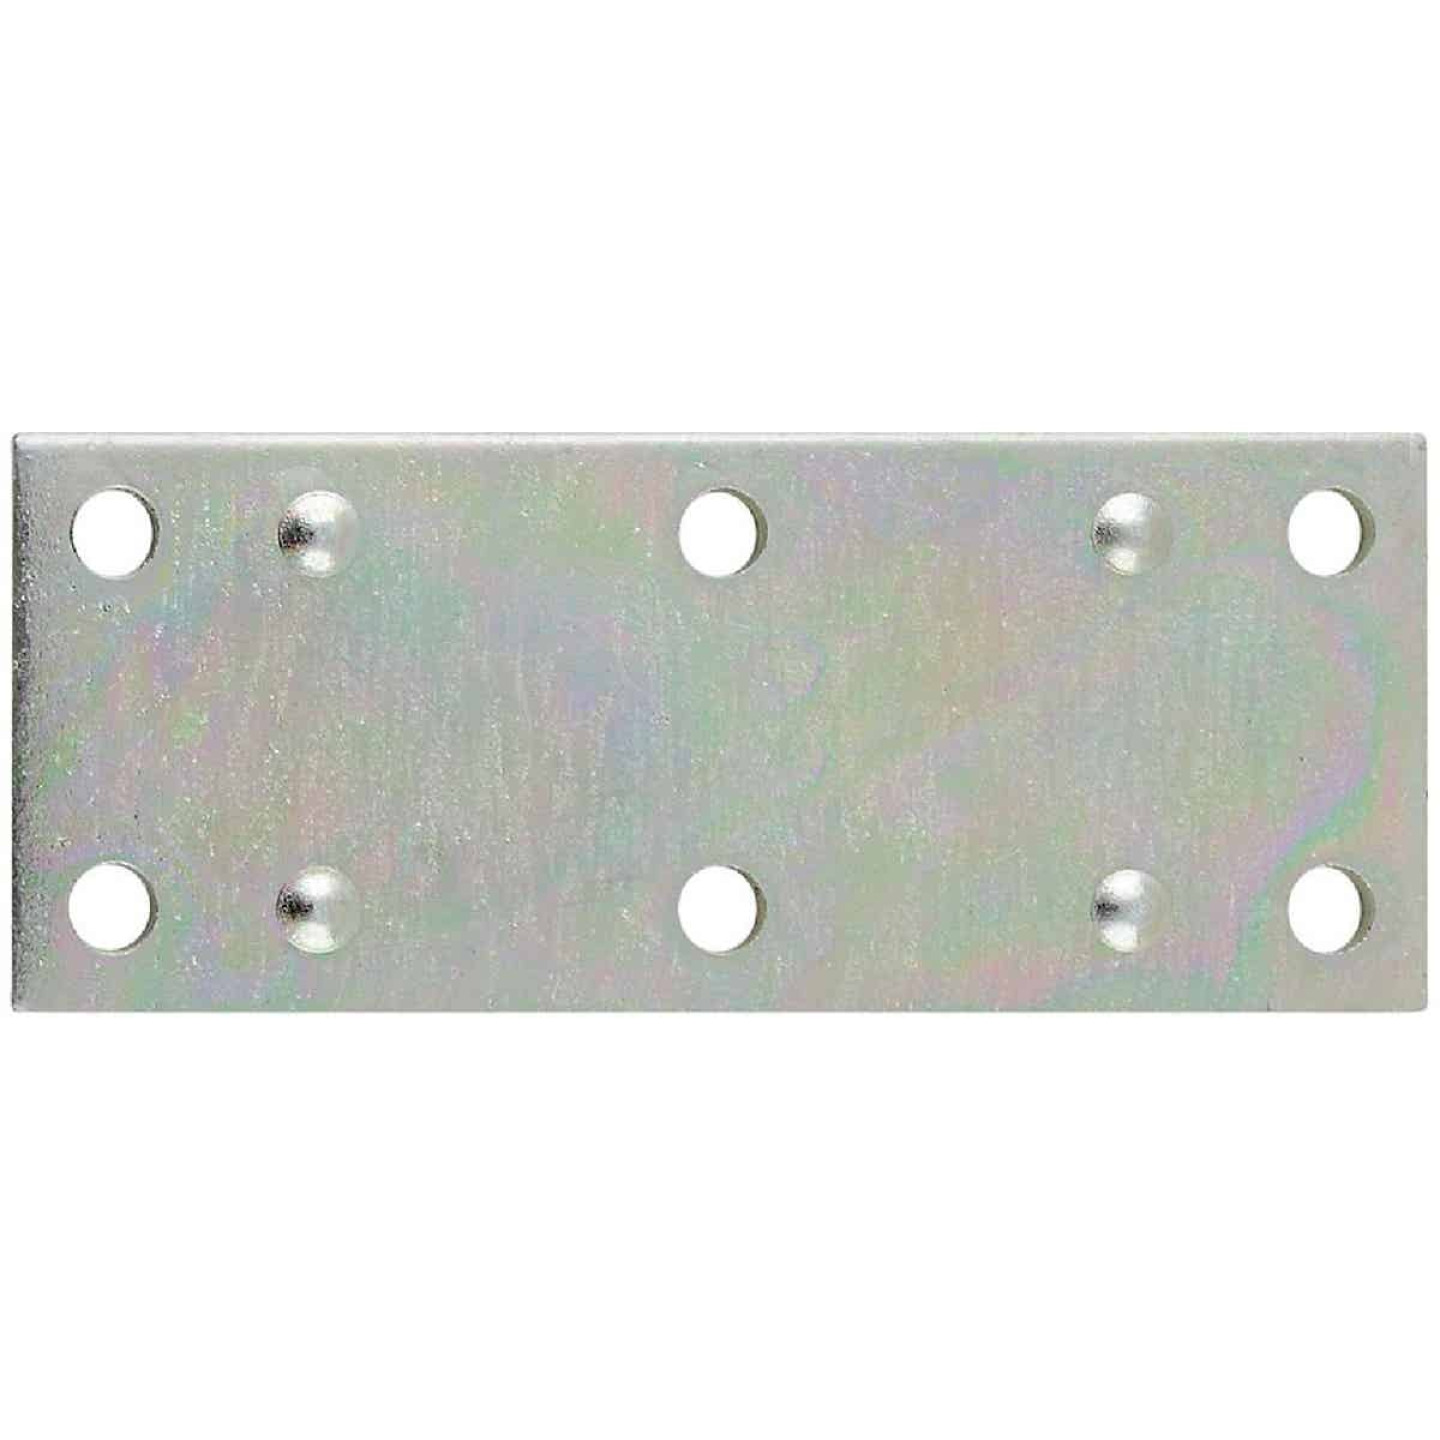 National Catalog V119 3-1/2 In. x 1-3/8 In. Mending Plate (4-Count) Image 1